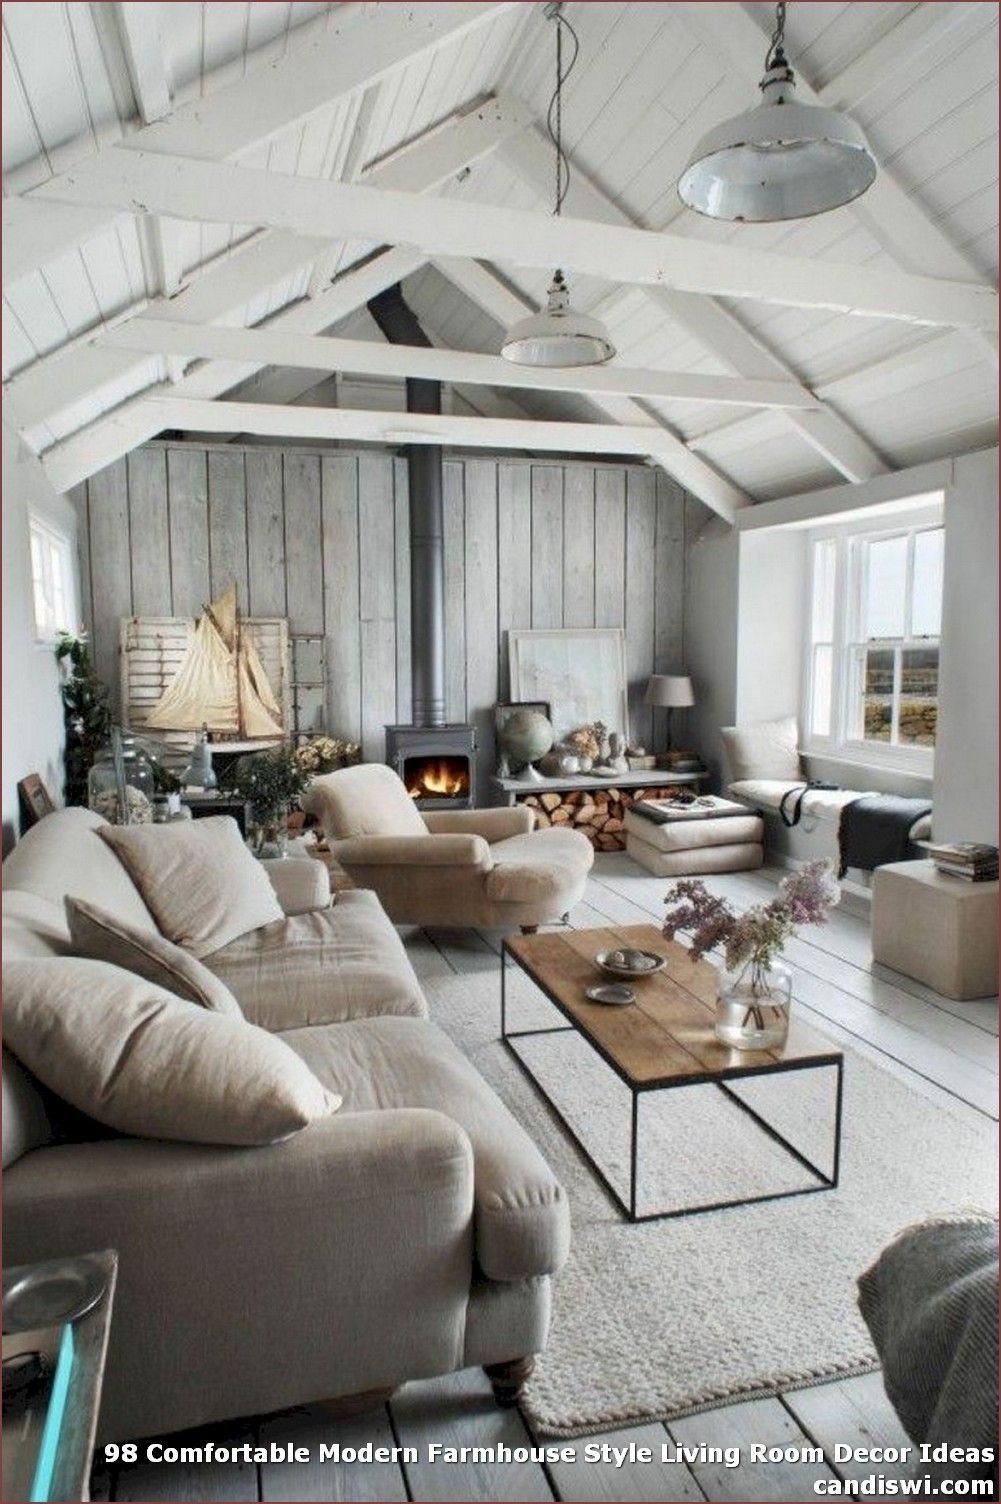 Pleasing Farmhouse Living Room Decor Images On Gorgeous ✓ 98 fortable Modern Farmhouse Style Living Room Decor On Farmhouse Living Room Decor Images